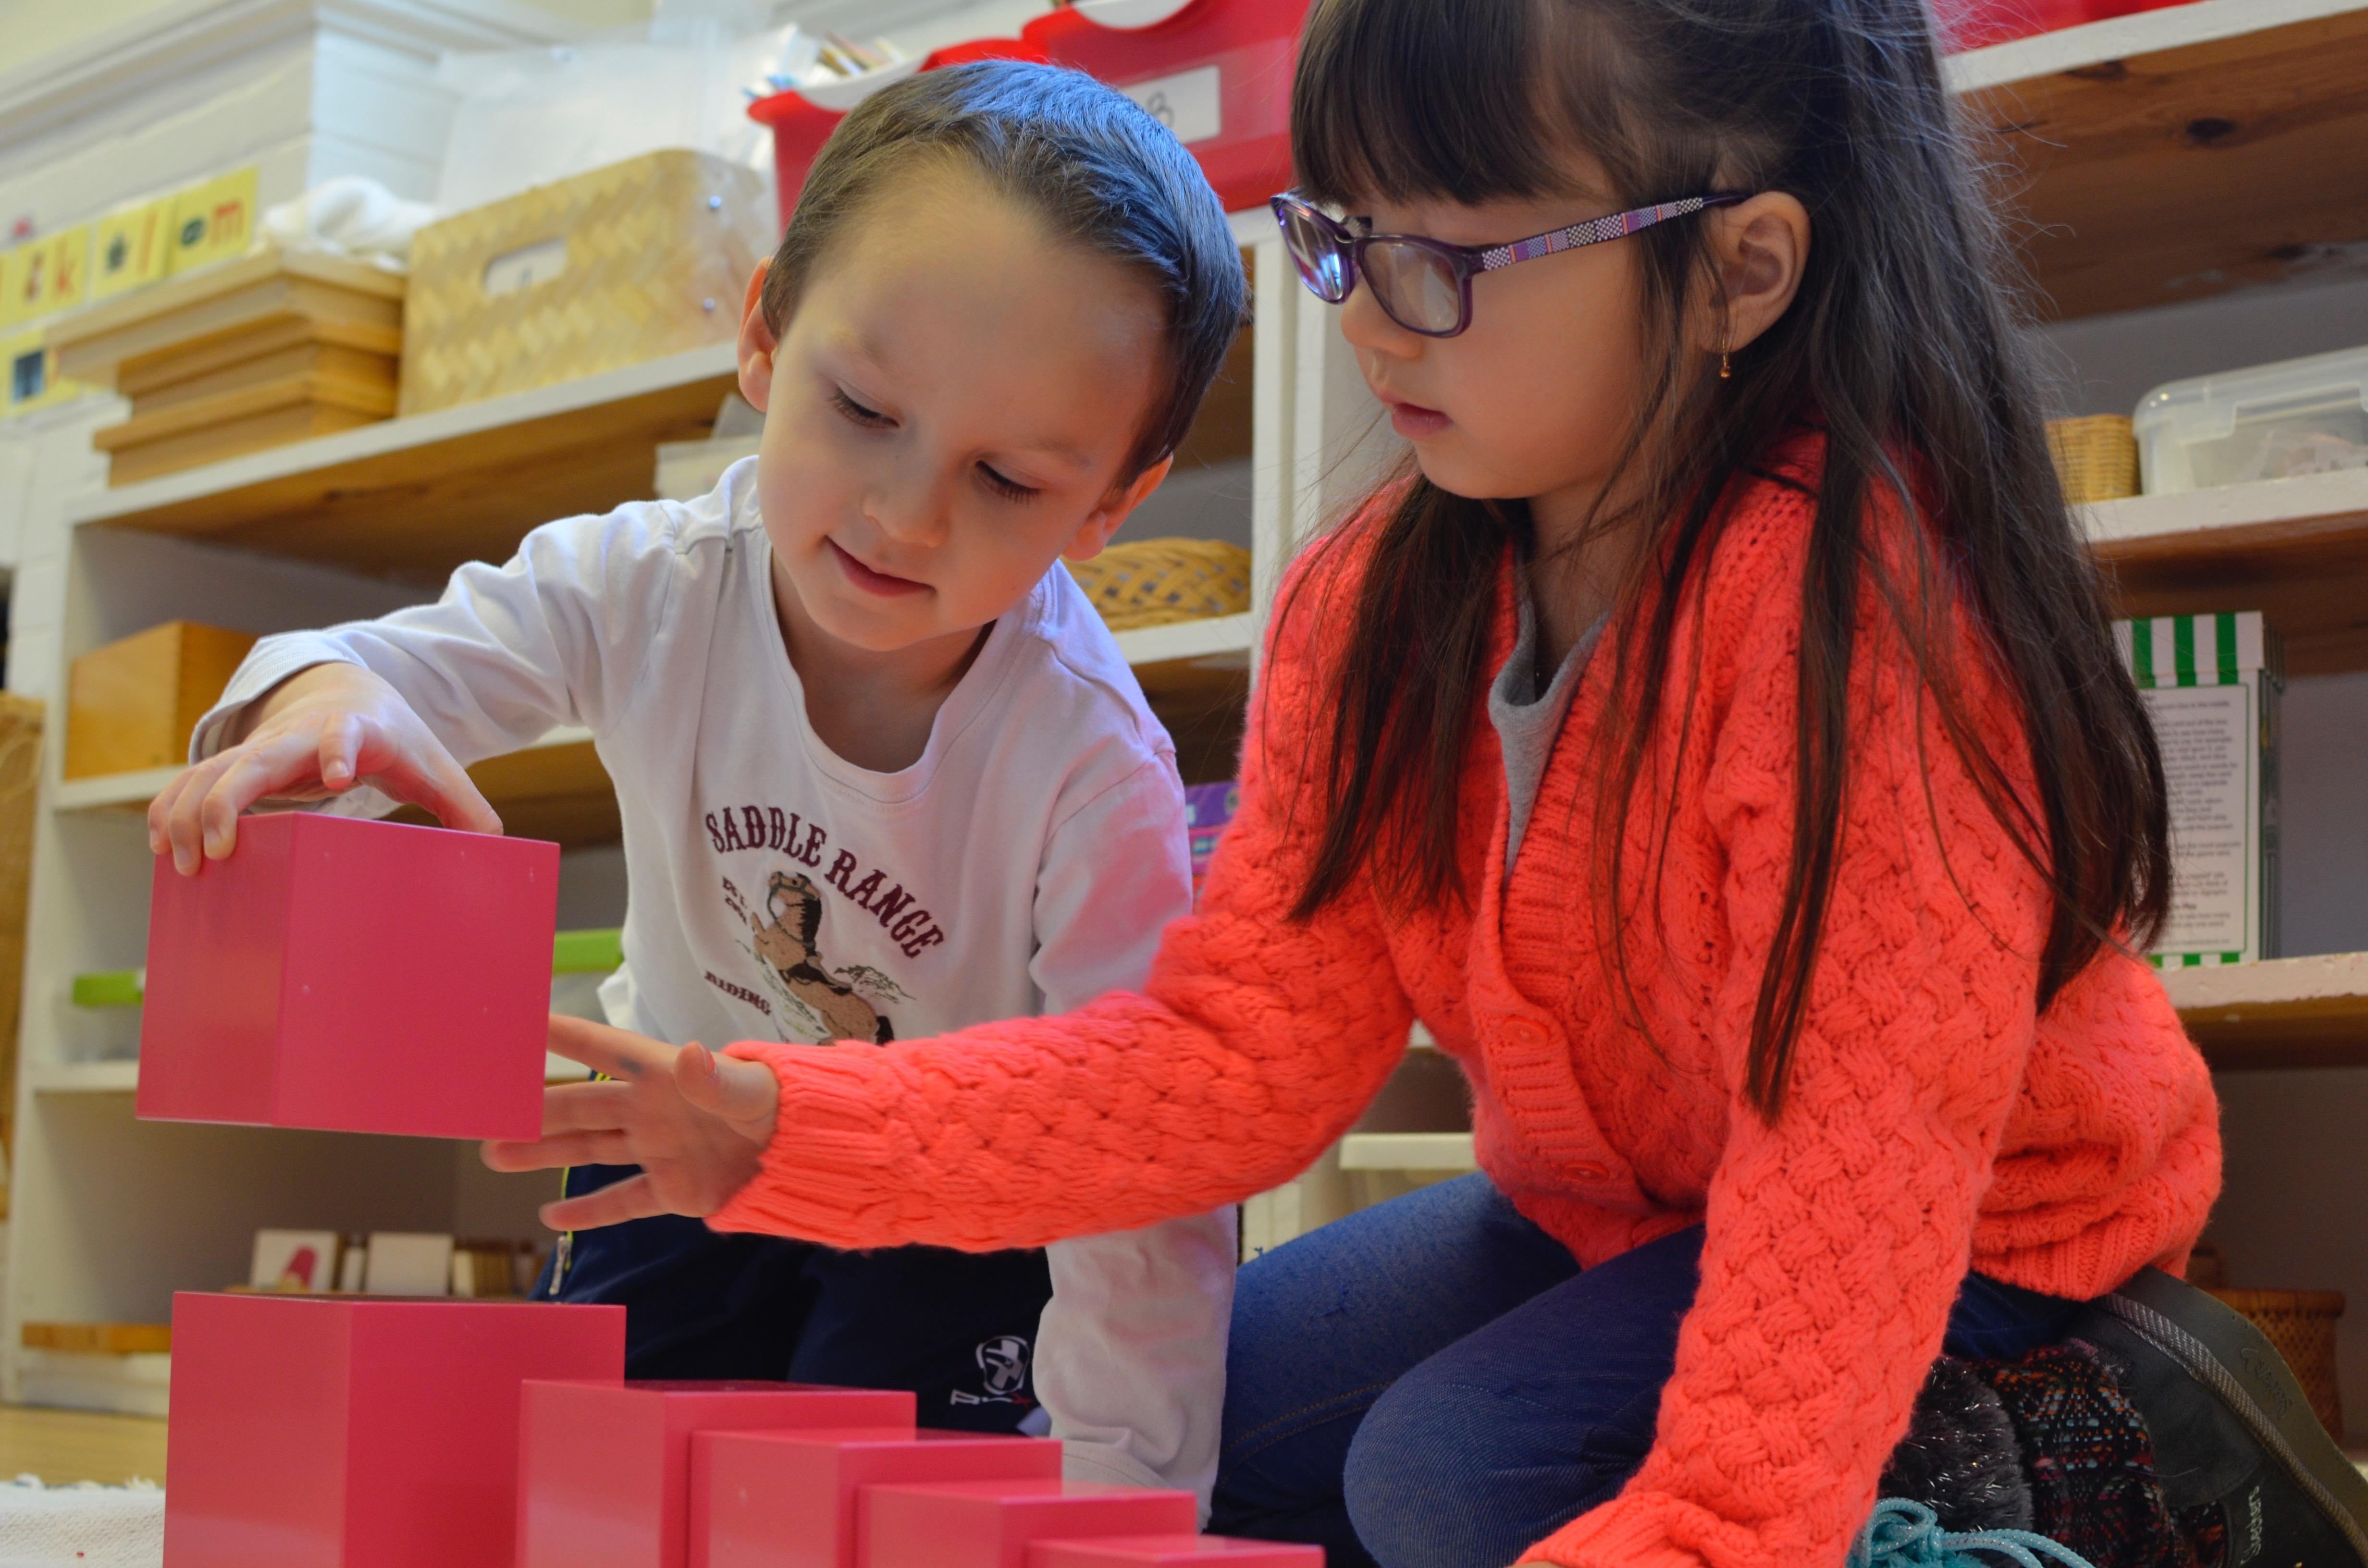 Primary student guiding younger student on building the pink tower